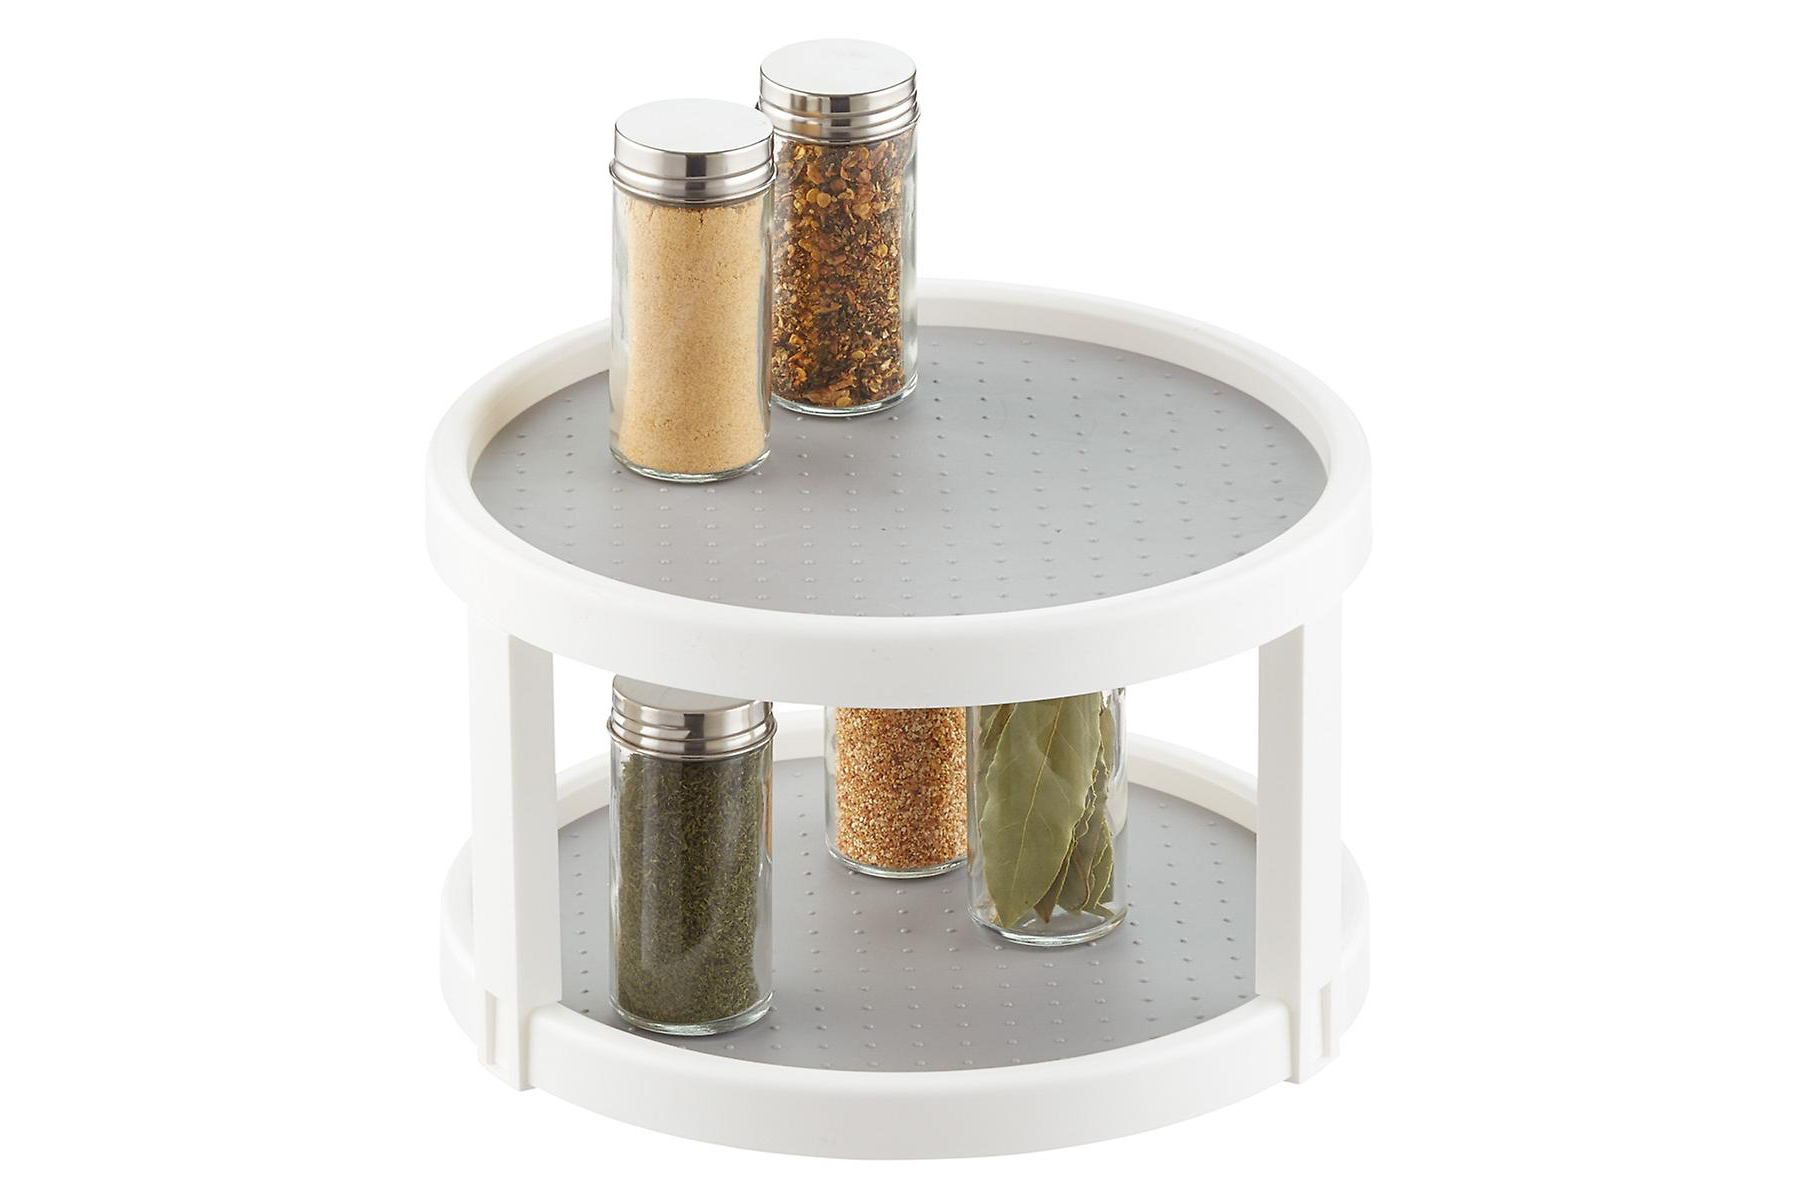 lazy susan with jars of spices